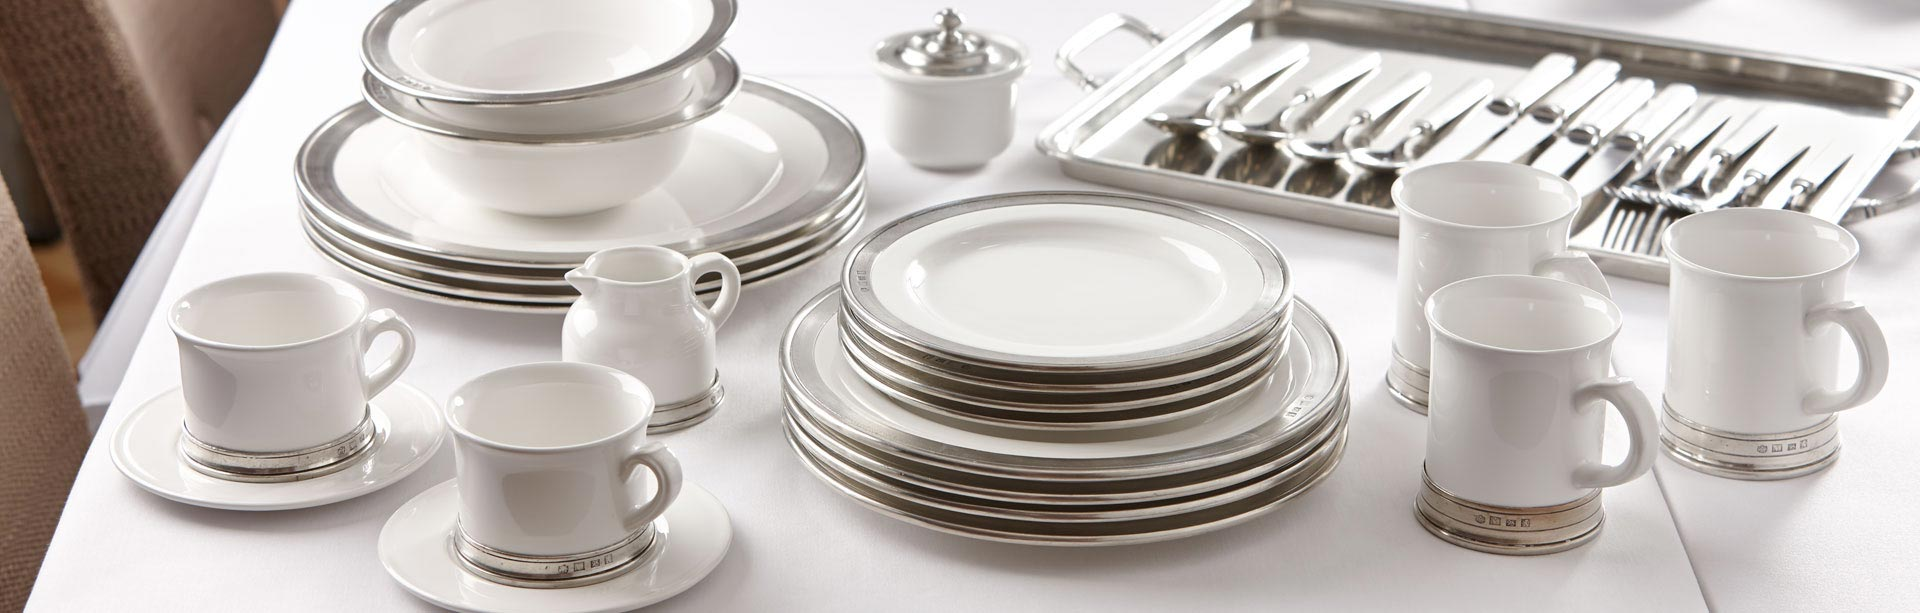 Tableware made in Italy